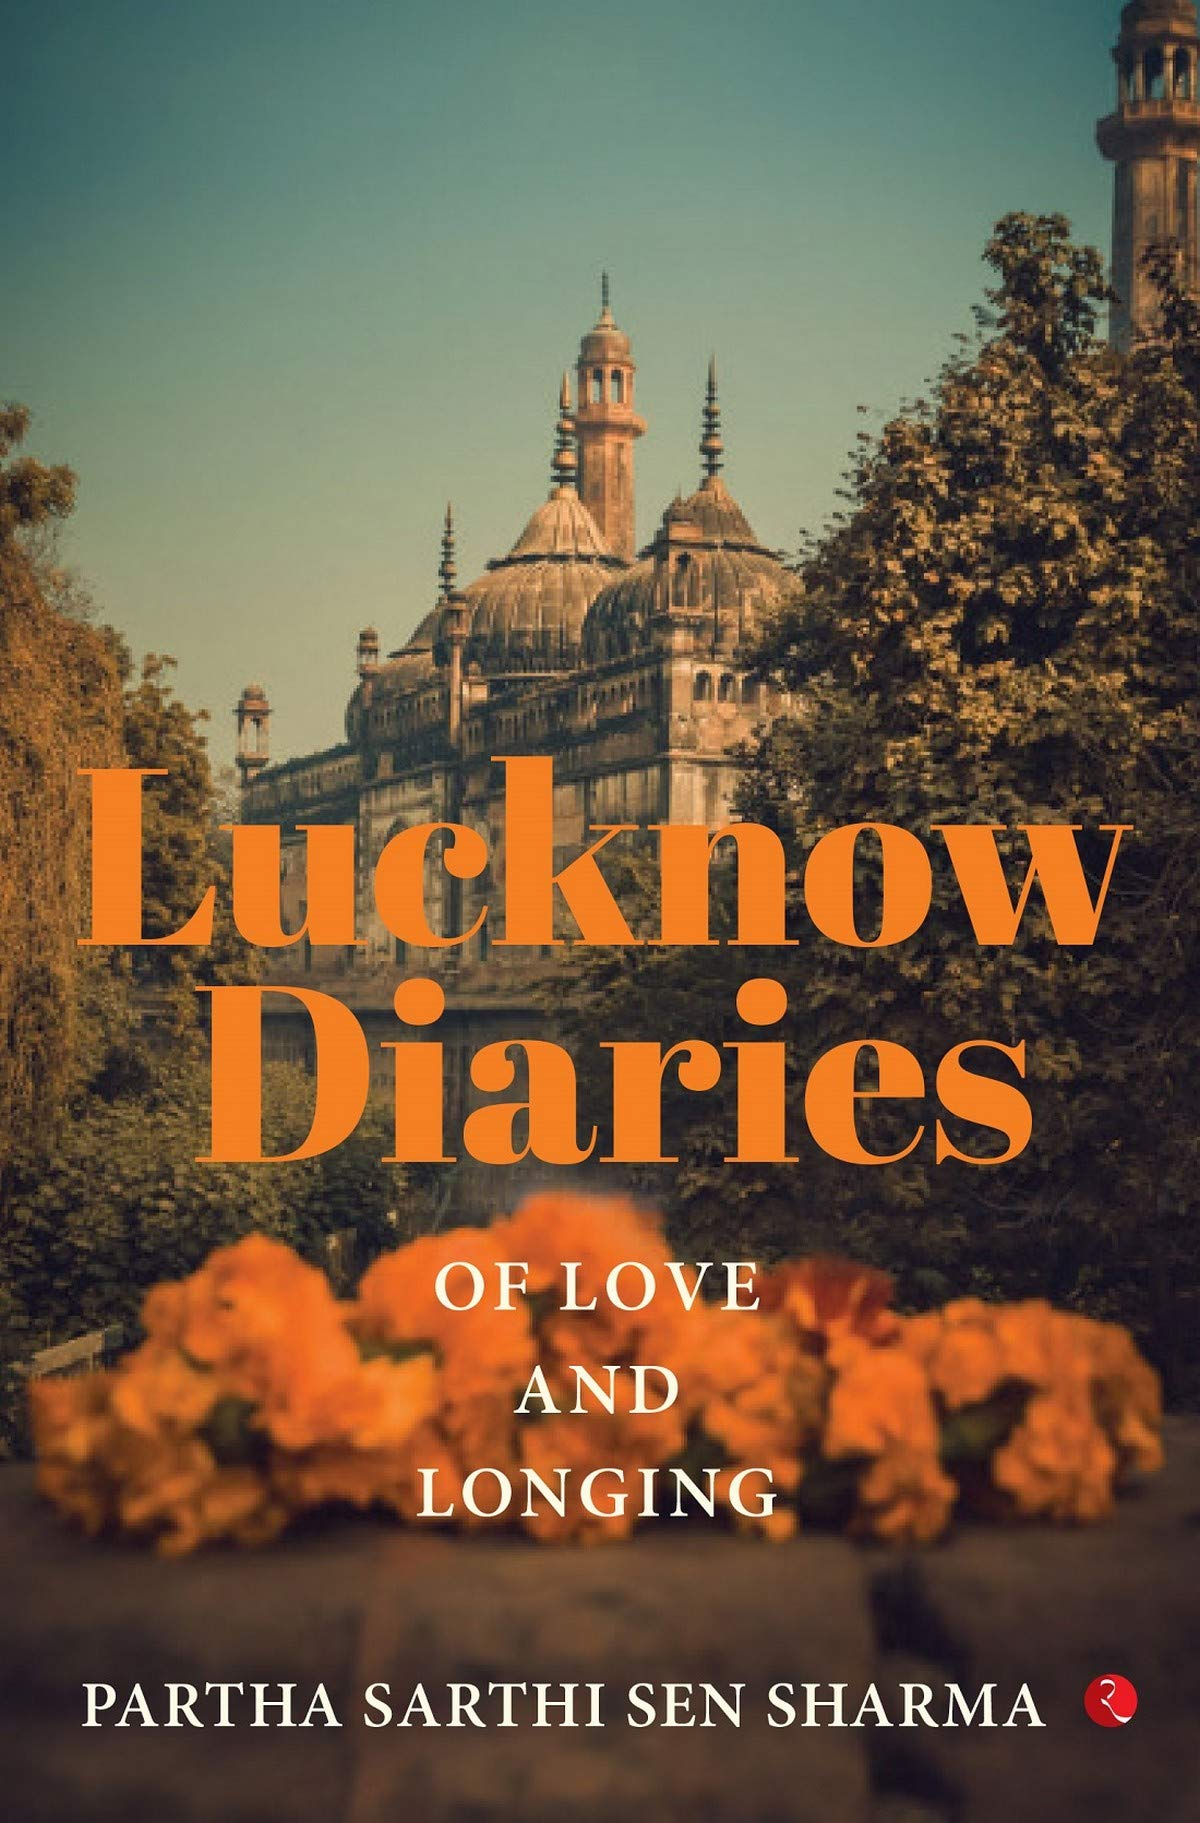 Lucknow Diaries: Of Love and Longing